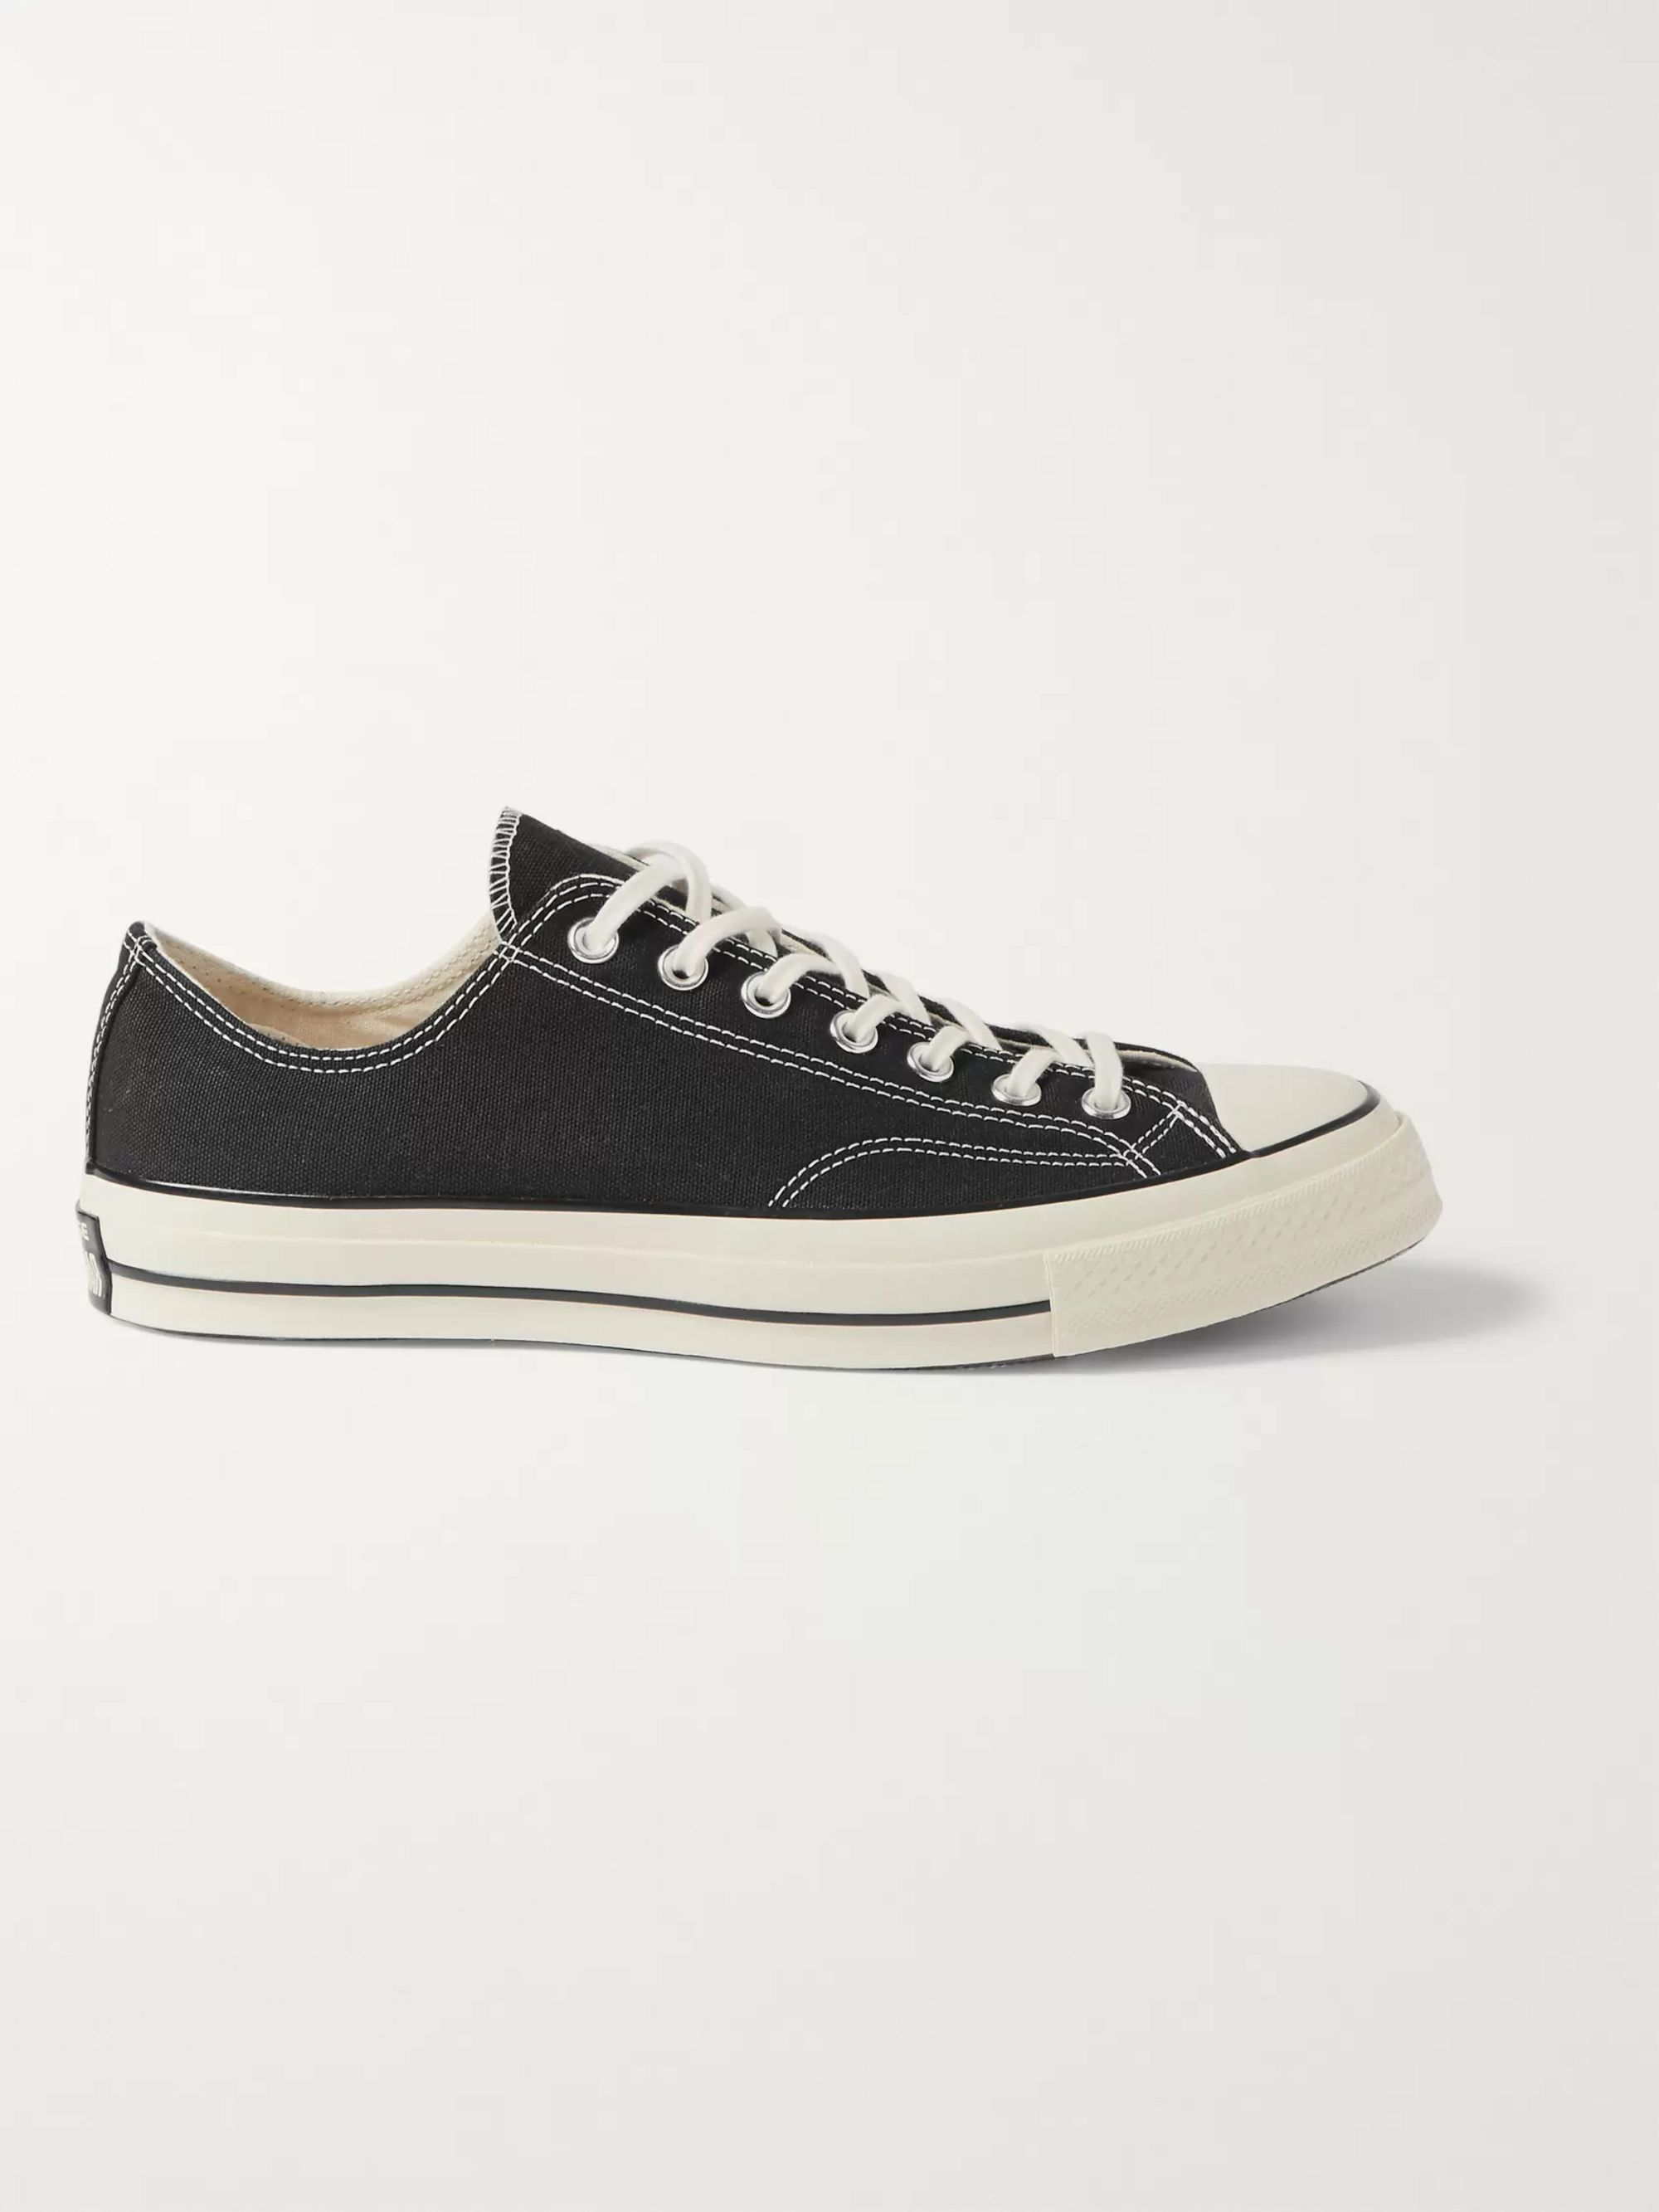 Black 1970s Chuck Taylor All Star Canvas Sneakers | CONVERSE | MR ...